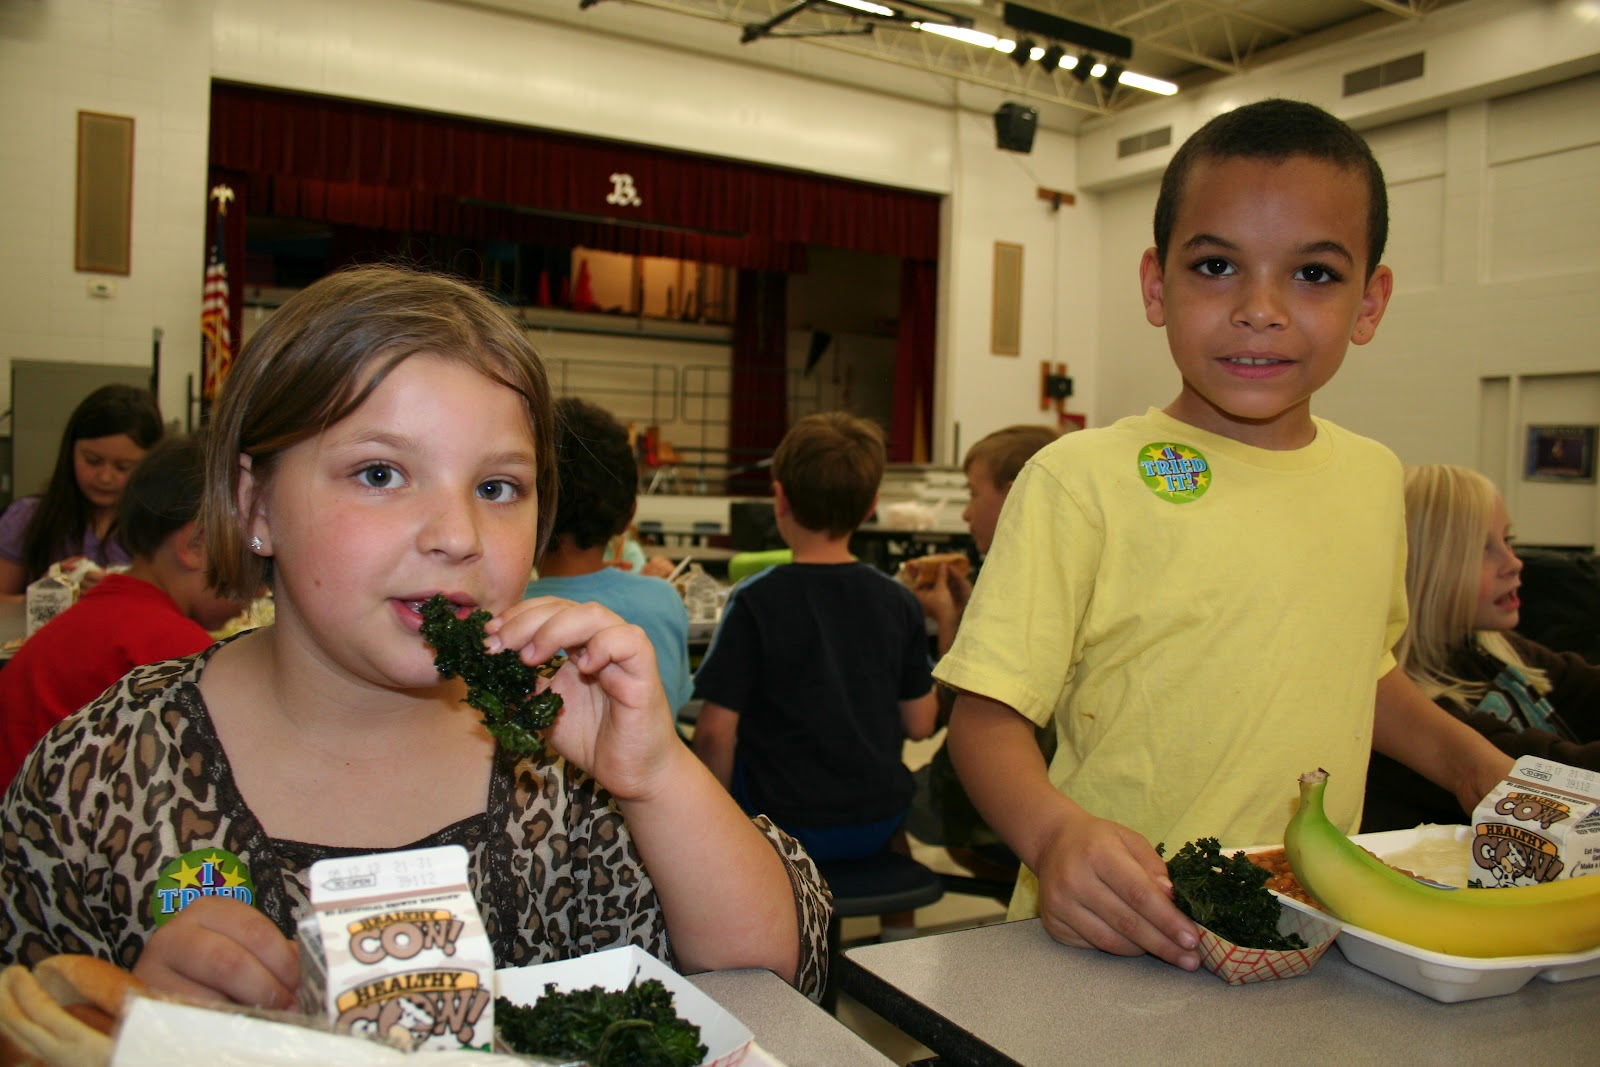 kentucky health news the obesity crisis our reports students in kenton county schools sample kale chips as part of an effort to incorporate more fruit and vegetables into their diets school district photo